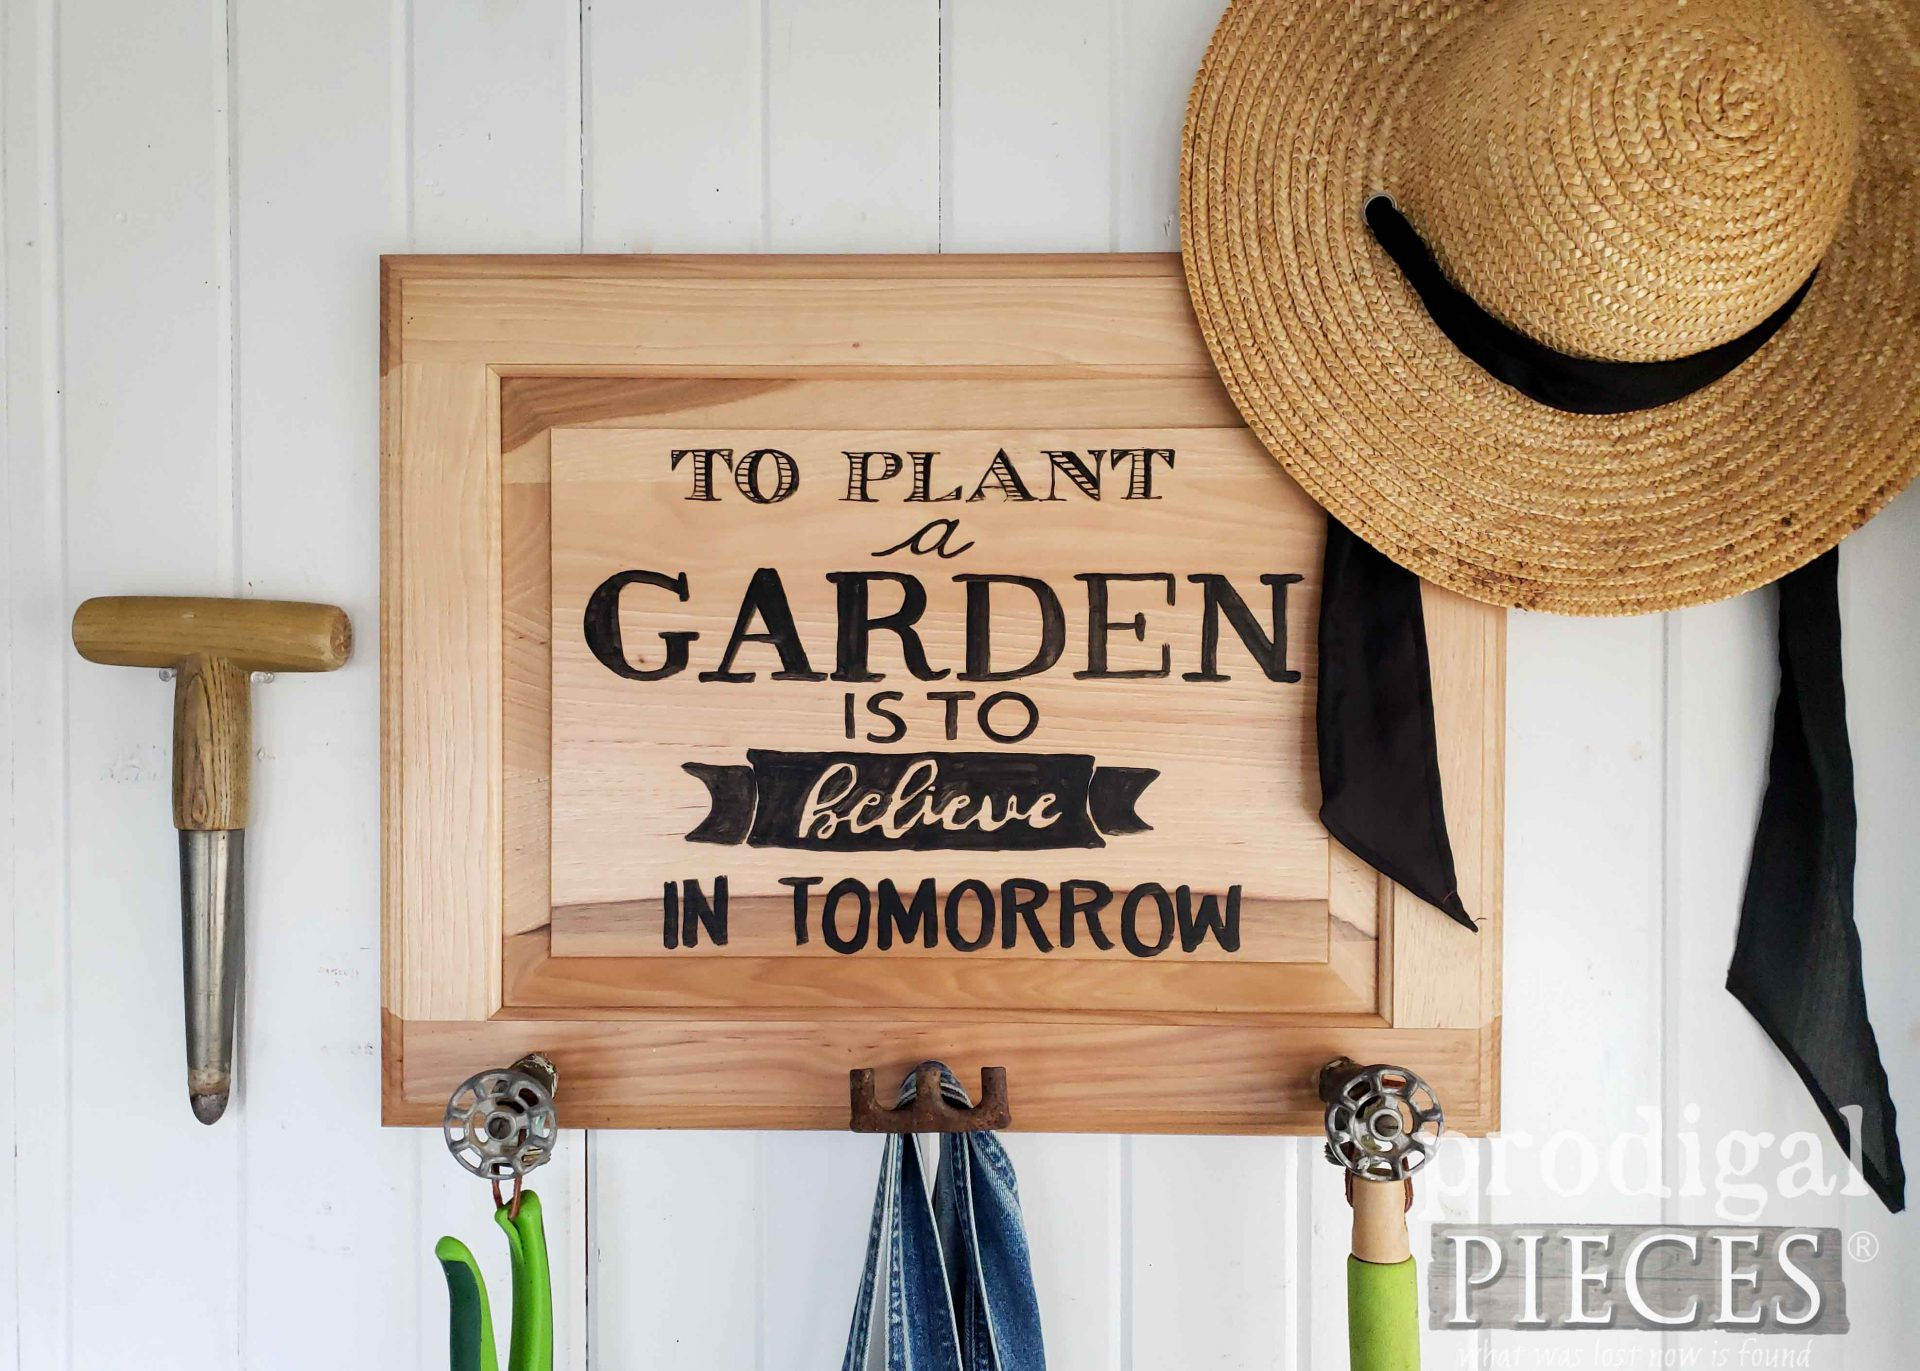 Upcycled Garden Sign Coat Rack by Larissa of Prodigal Pieces | prodigalpieces.com #prodigalpieces #diy #garden #farmhouse #home #homedecor